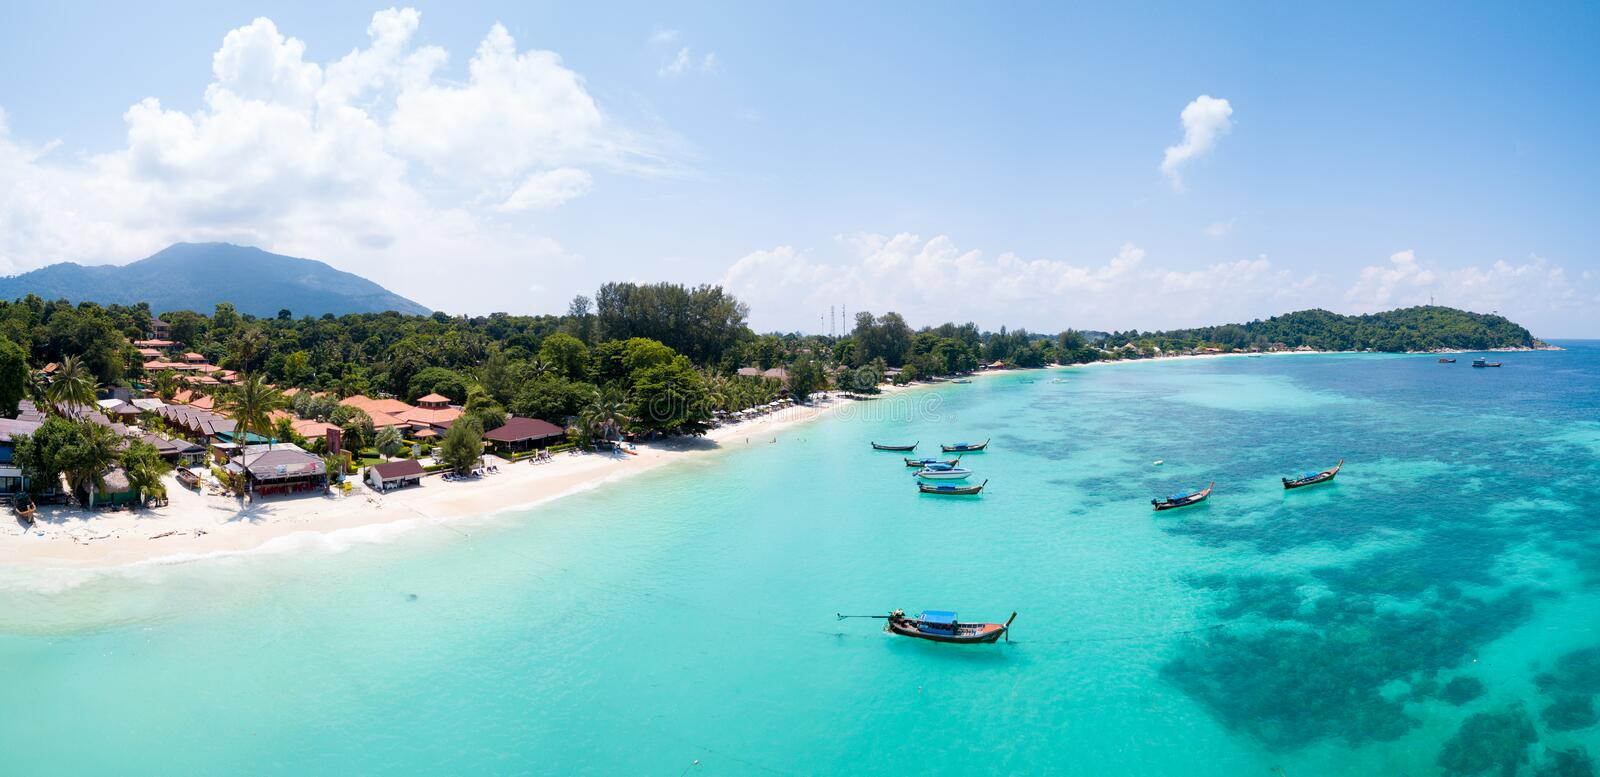 Aerial View Over Water Ko Lipe Beach Thailand royalty free stock photography